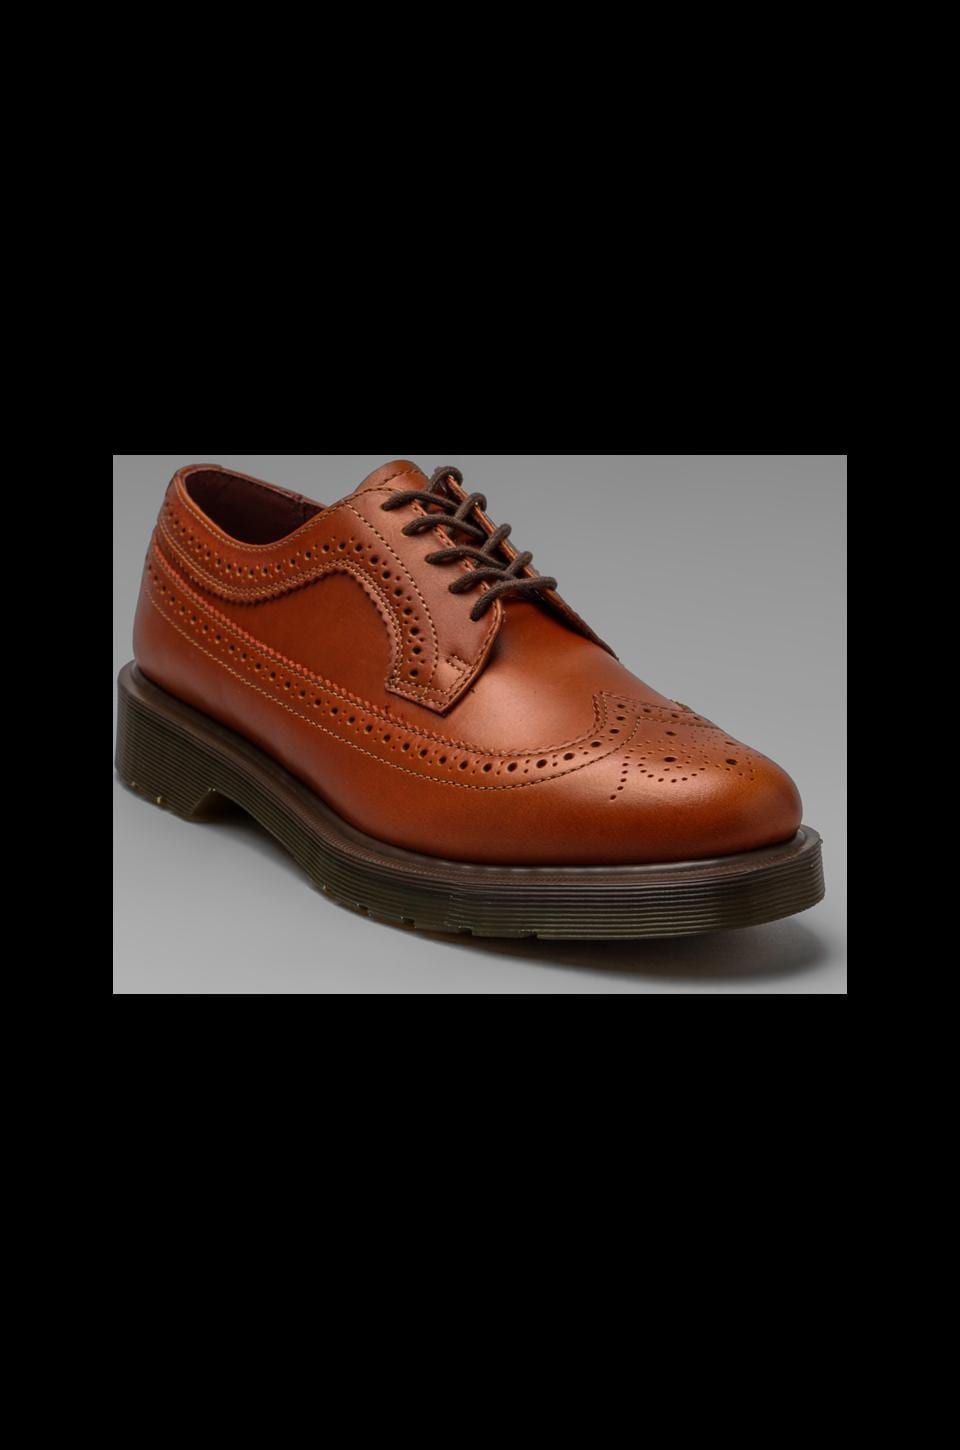 Dr. Martens 3989 Brogue Shoe in English Tan